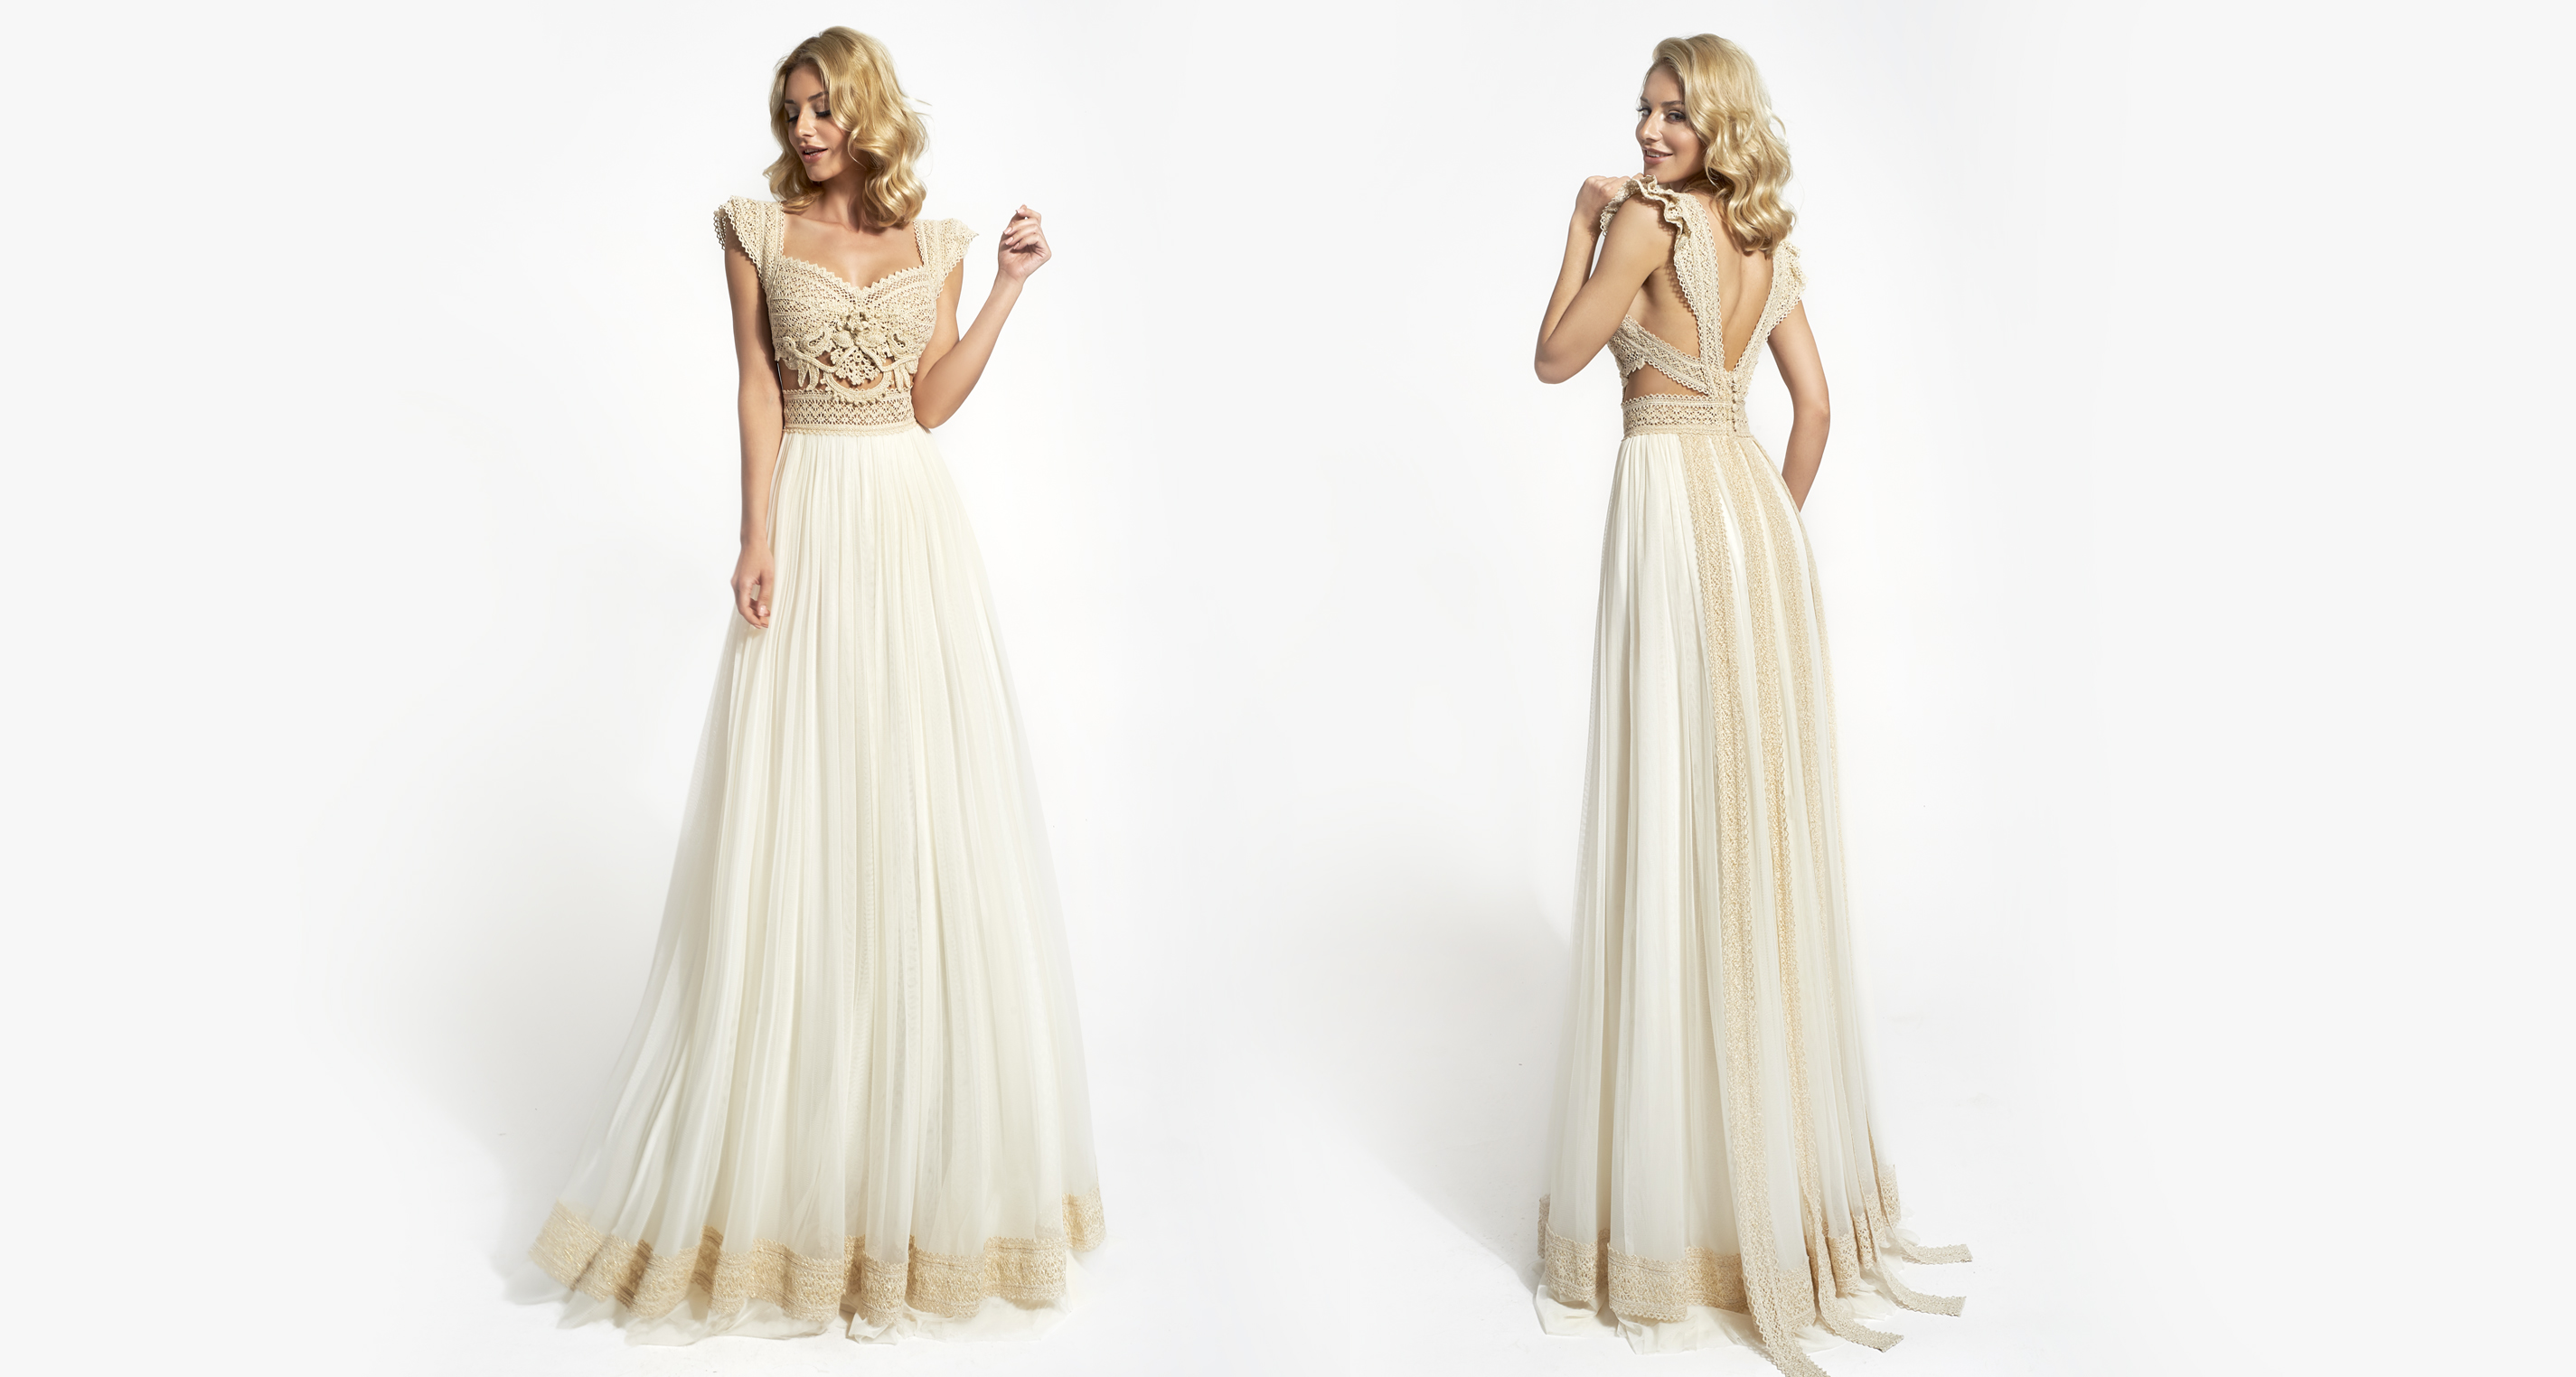 Ijunia Opulence wedding dress from  Hellenic Vintage Opulence Collection